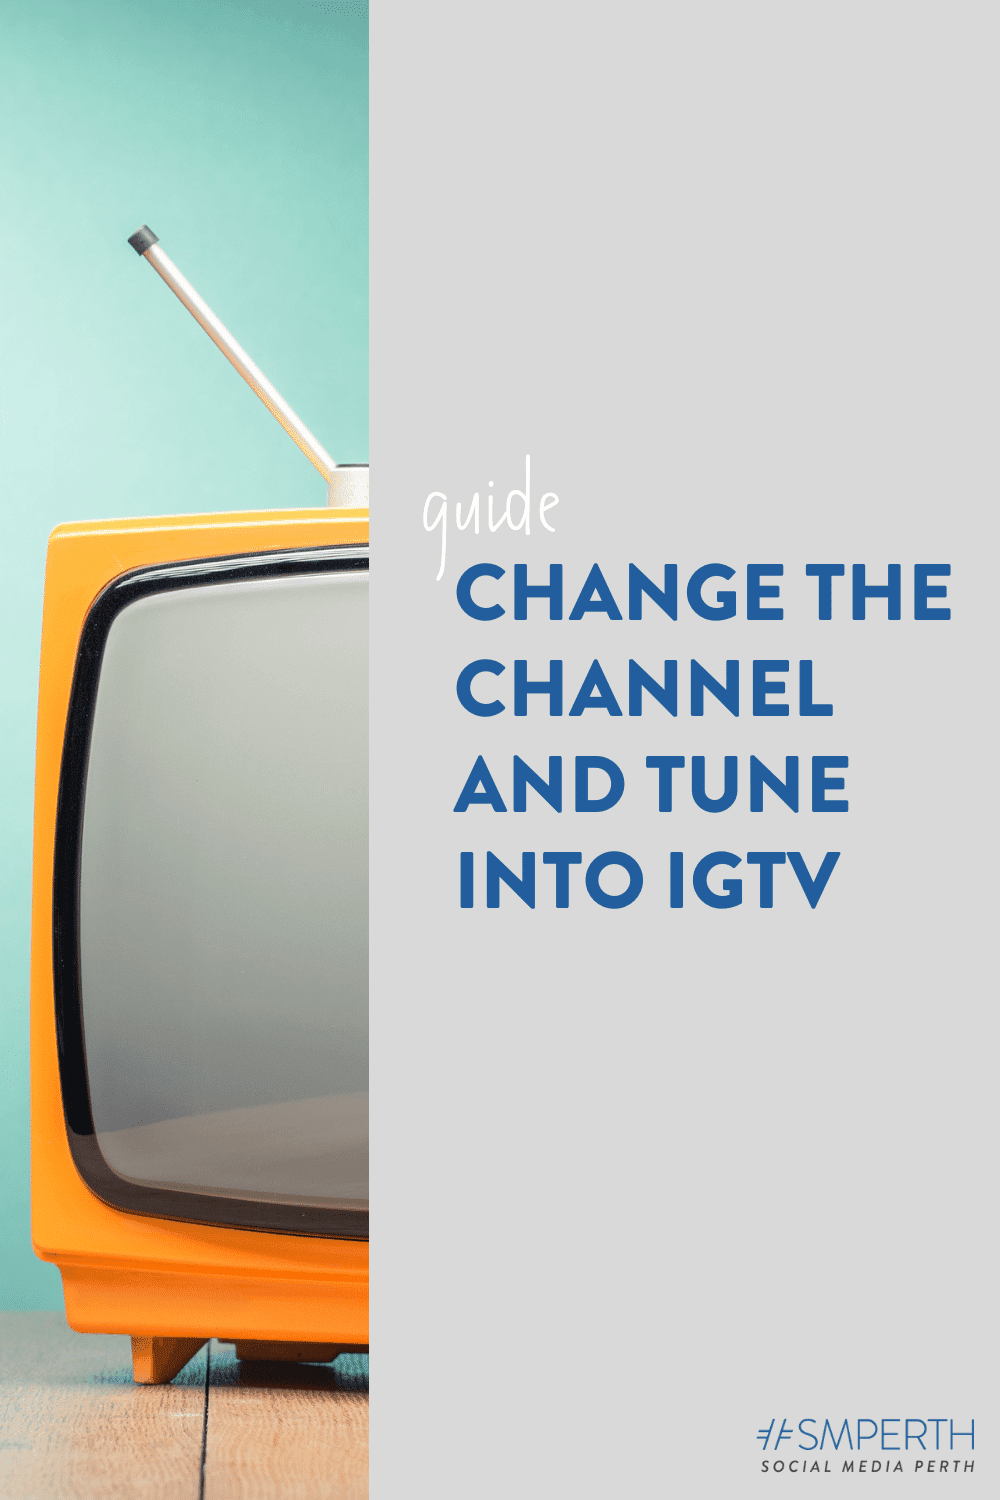 Change the channel and tune into IGTV